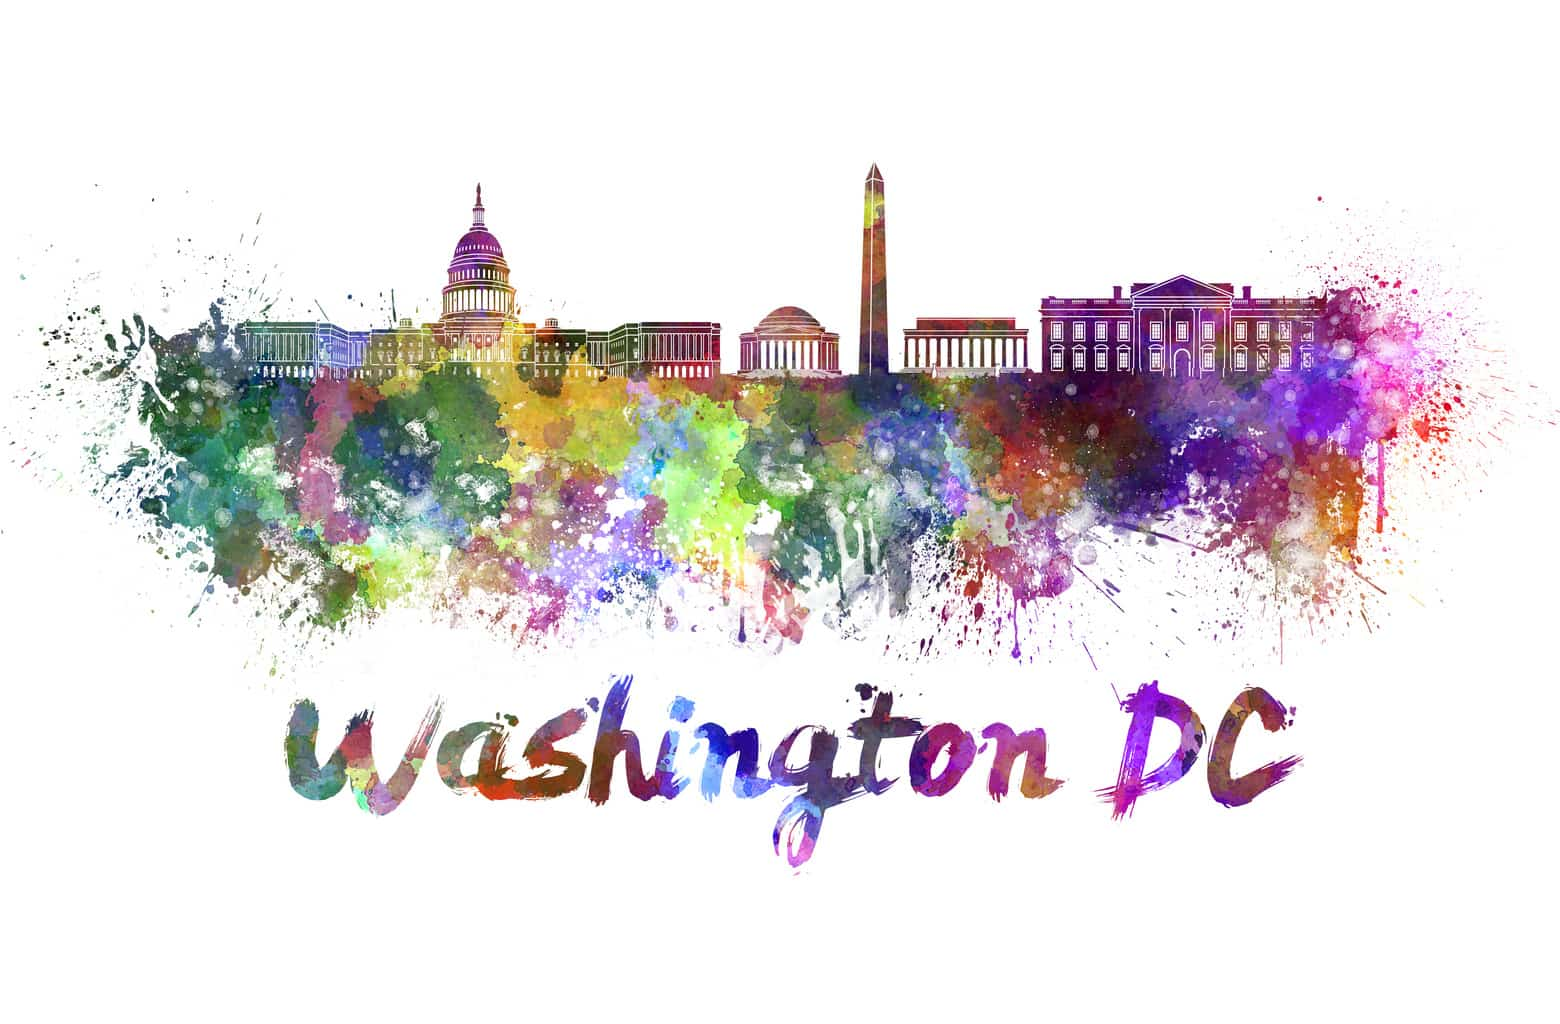 10 Must See Attractions in Washington, DC